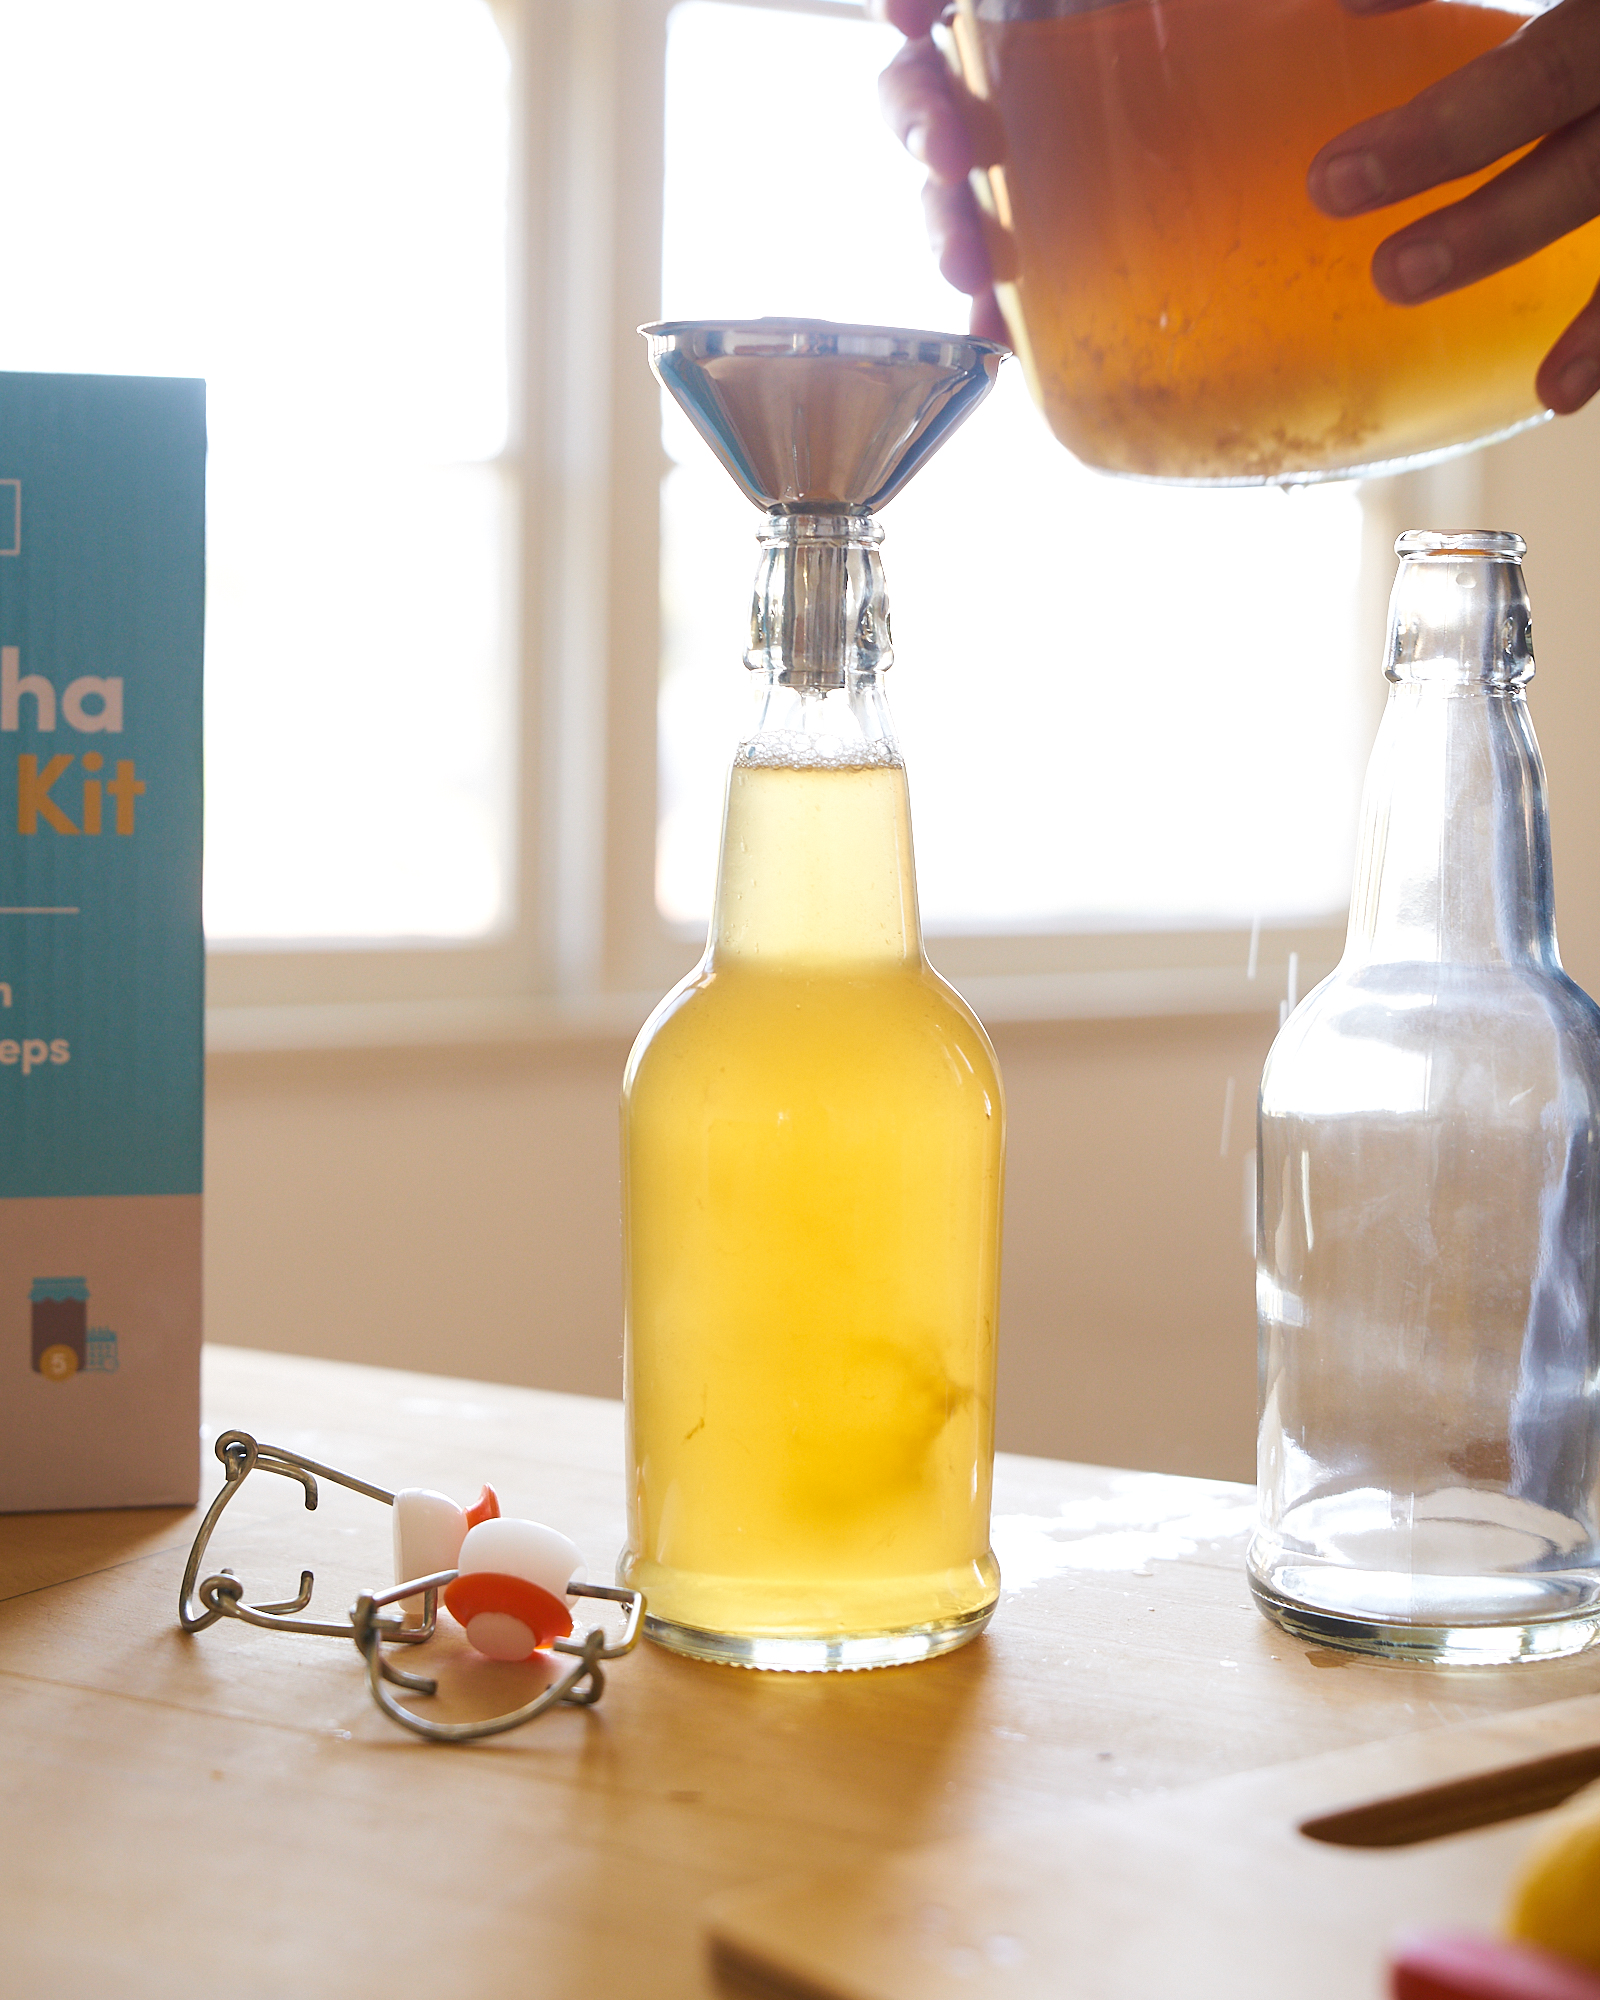 How To Bottle - (Second Fermentation)Bottling Kombucha has provided health enthusiasts a way to make their own health drinks. In this article, we will go over the details on how to transfer your finished brew into bottles, flavoring, and how to get it fizzy.